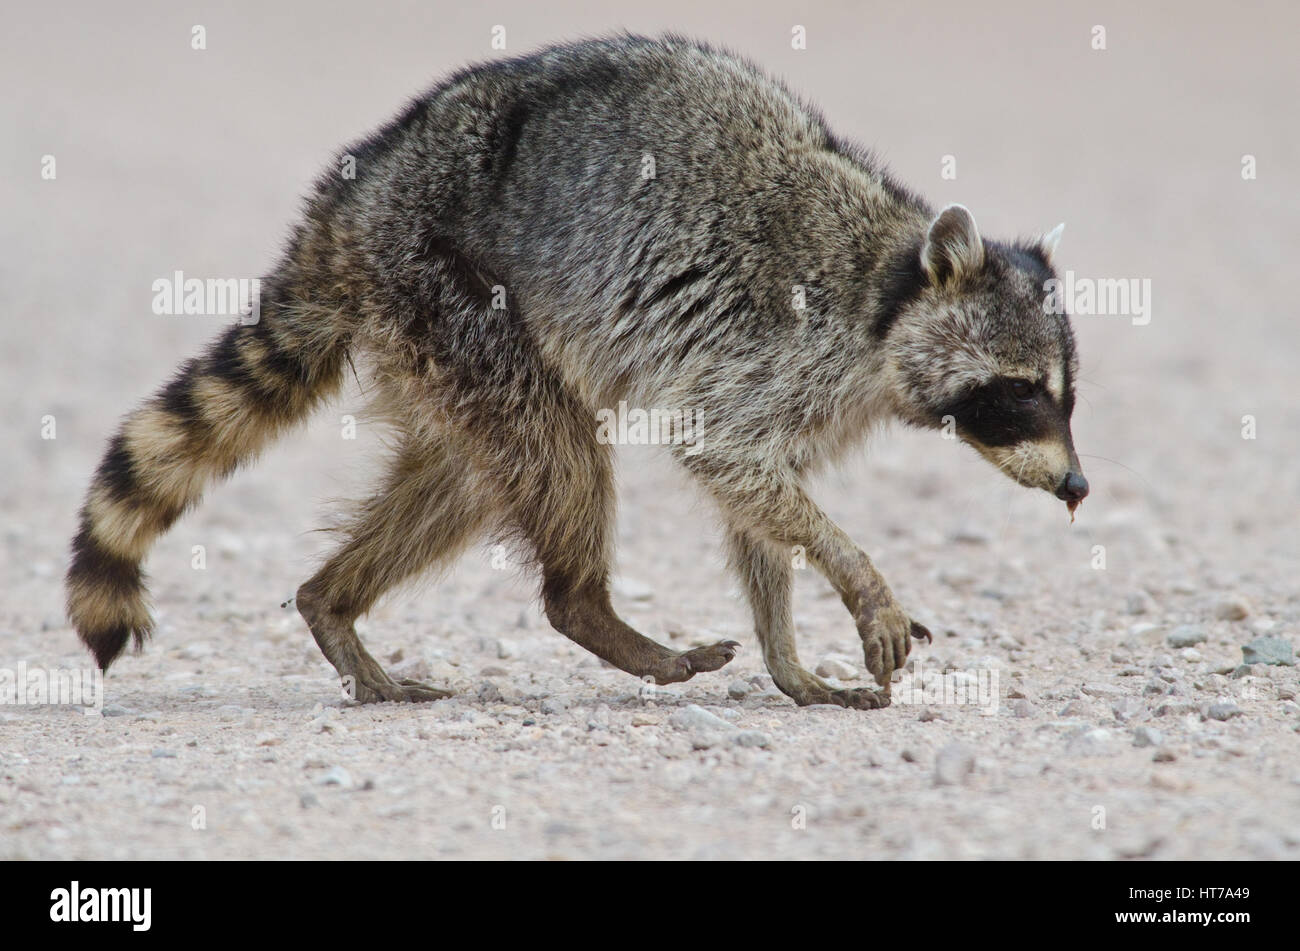 Sickly looking Raccoon at Bosque del Apache National Wildlife Refuge, New Mexico, USA. - Stock Image